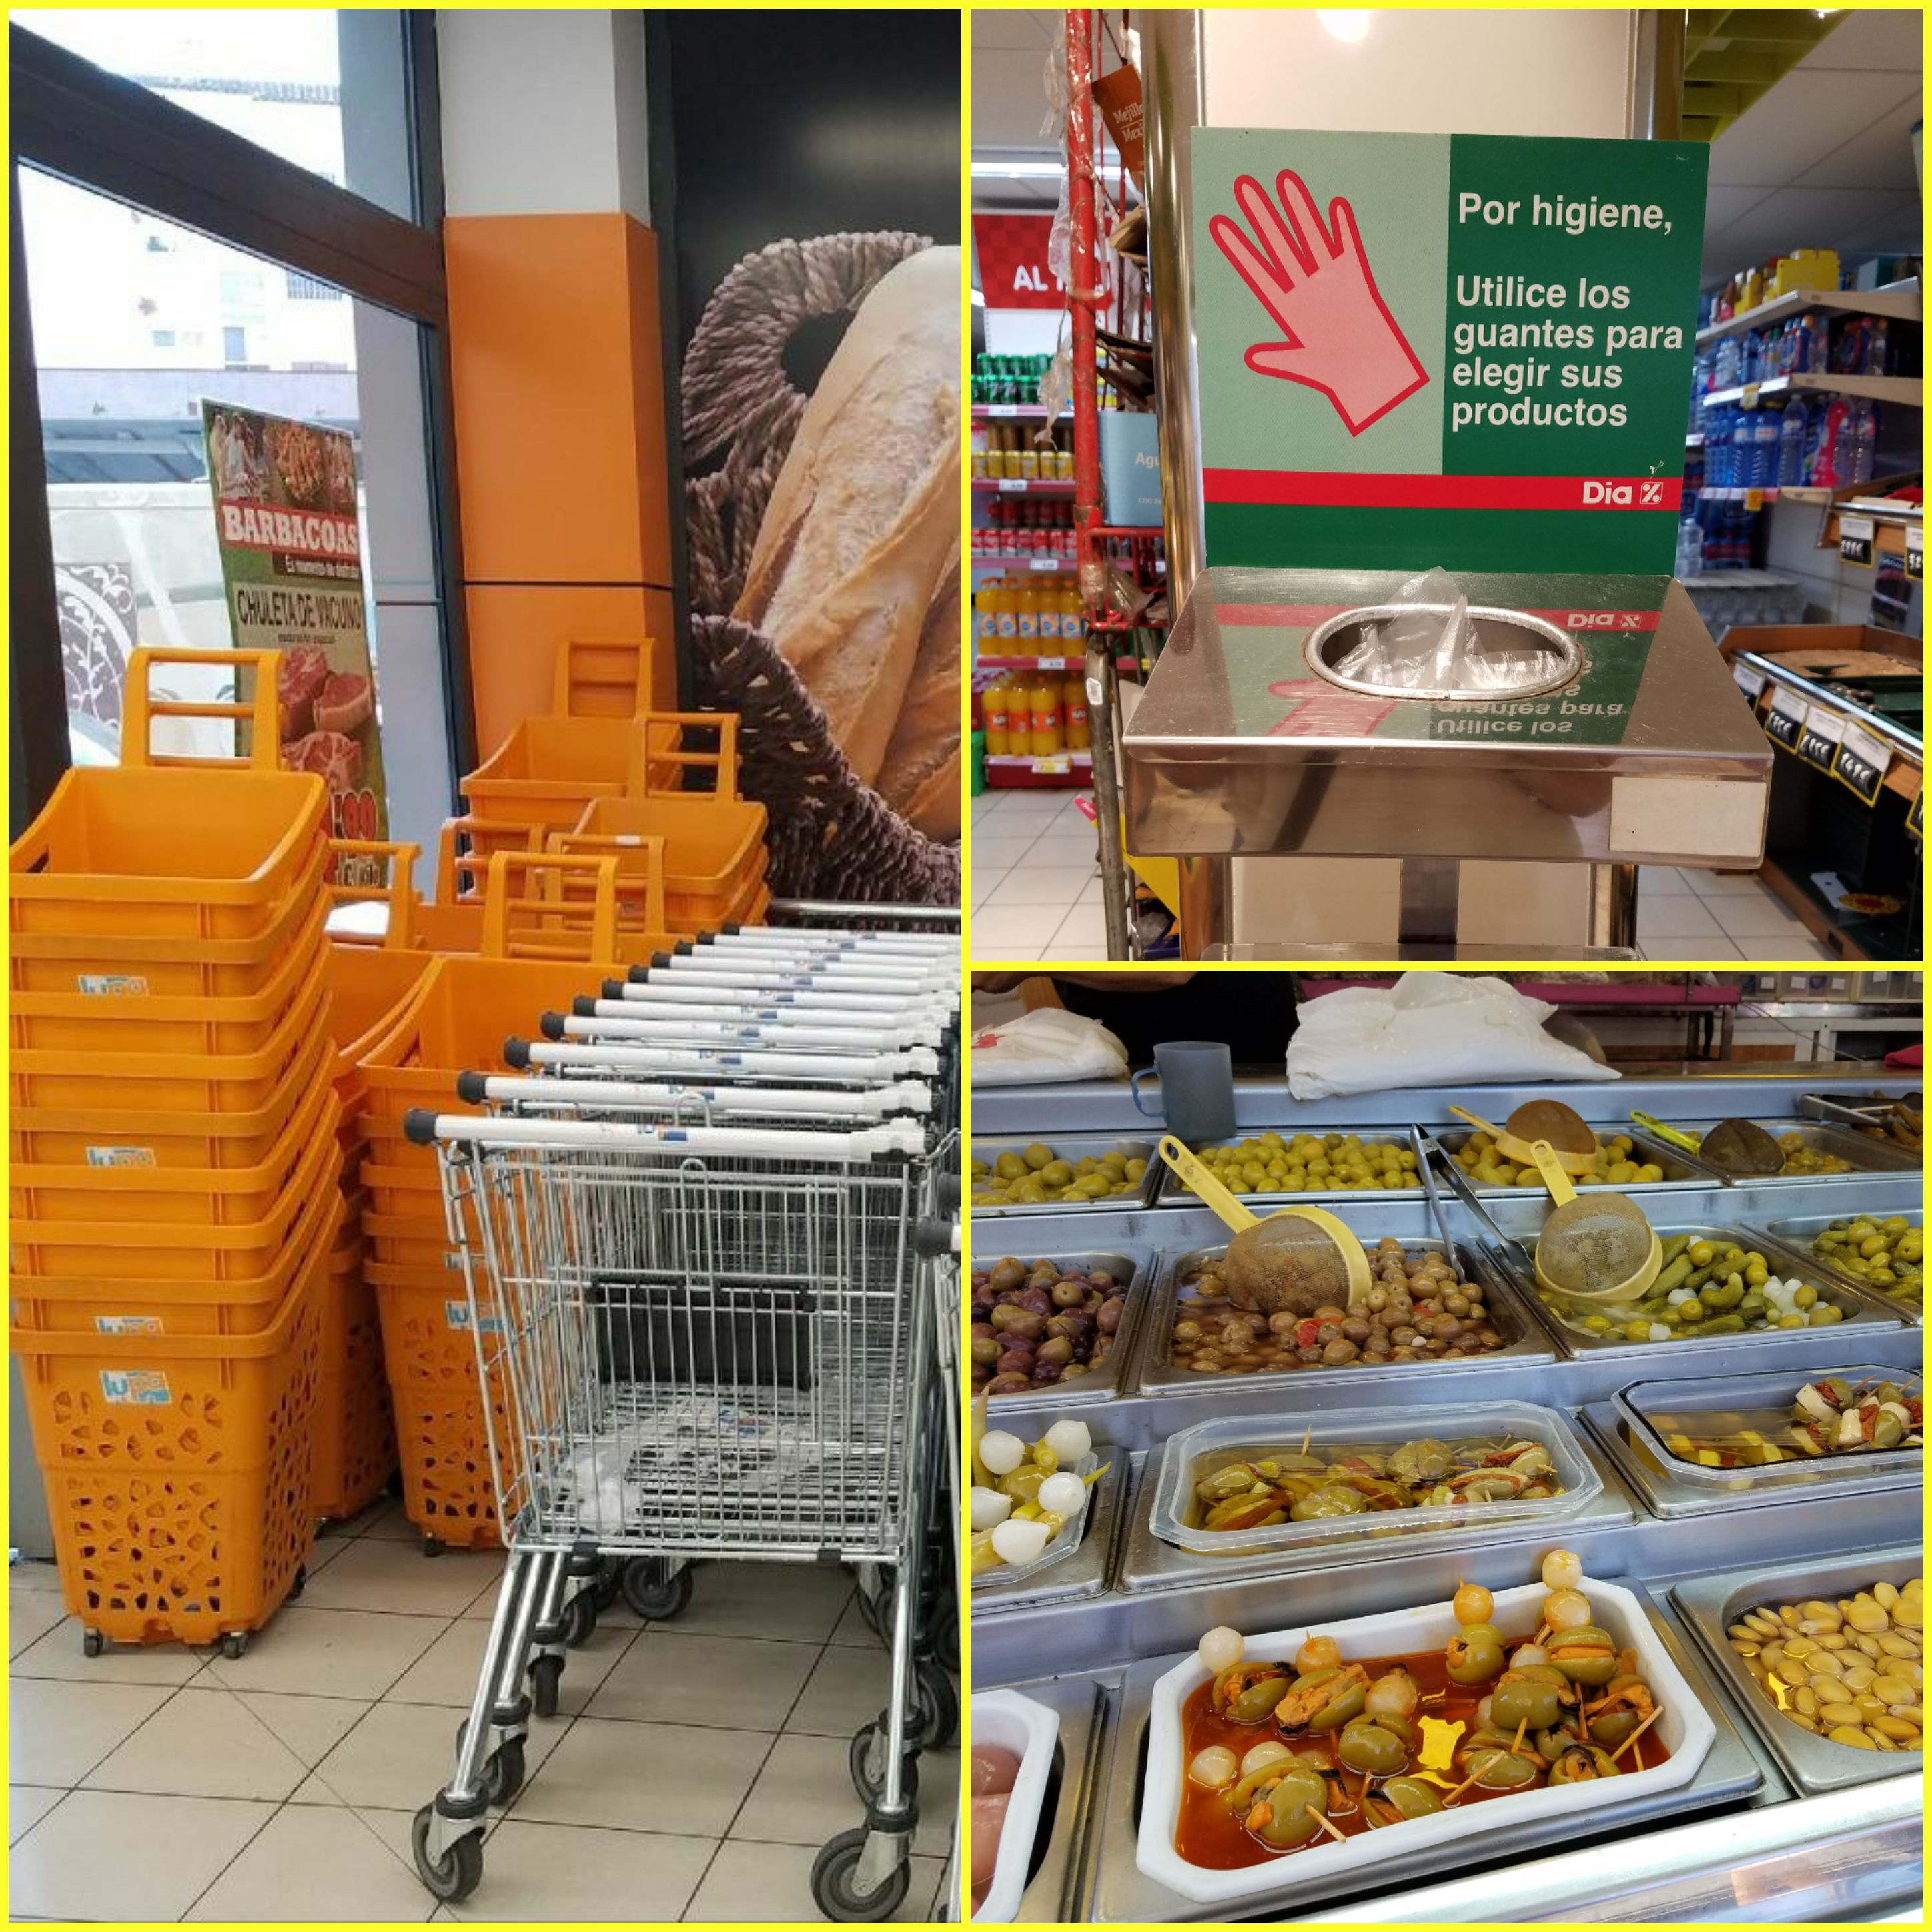 Spanish grocery store image collage